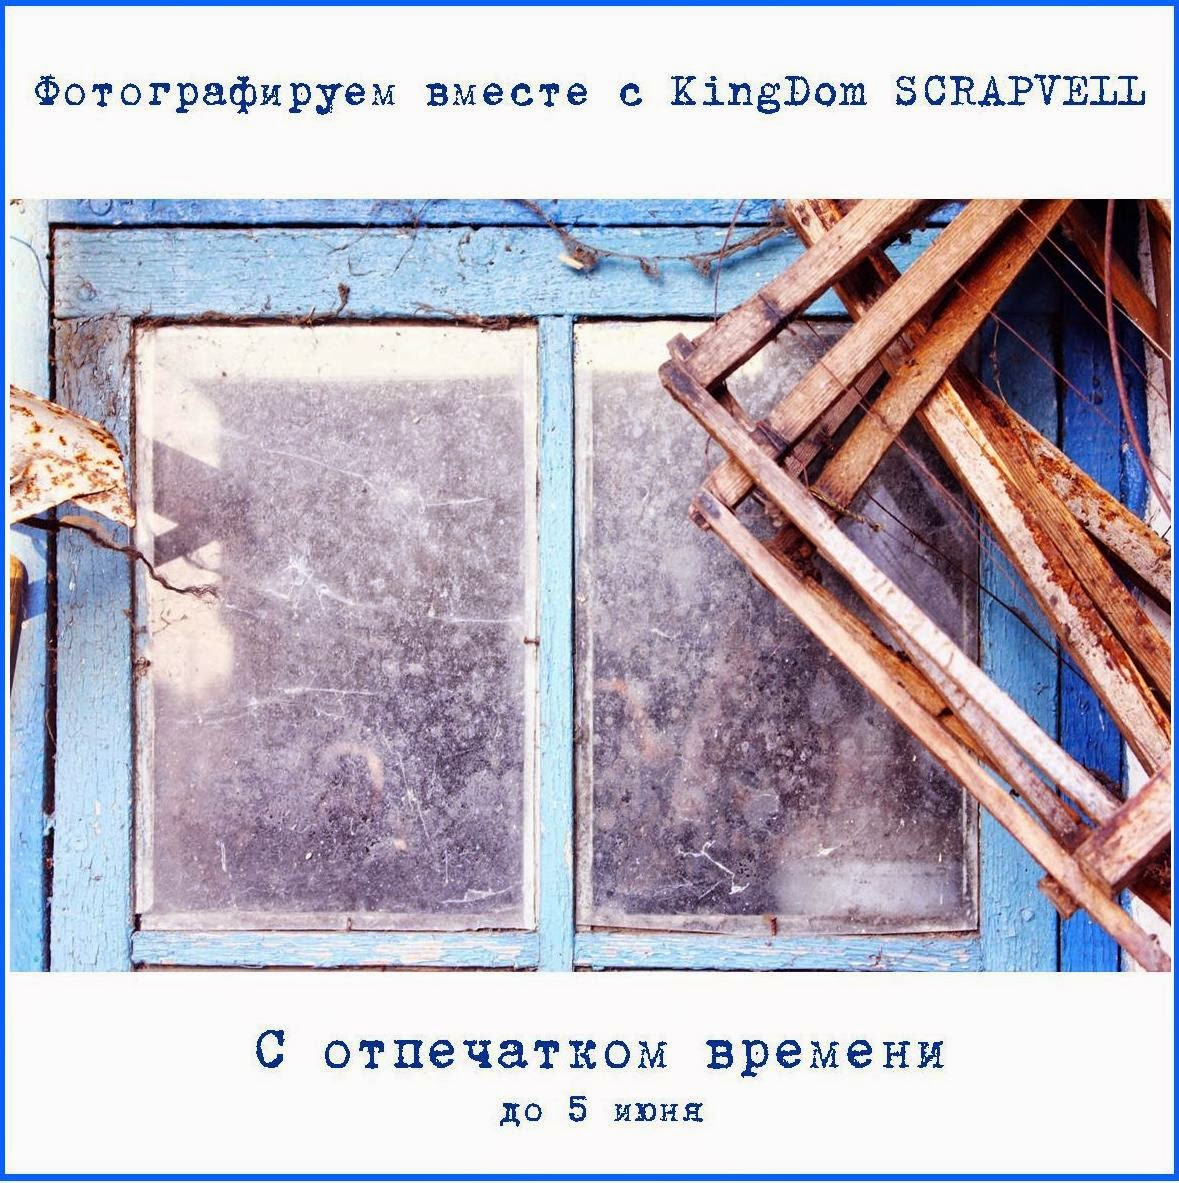 http://scrapvell.blogspot.ru/2015/05/30-my-small-photo-history-kingdom.html